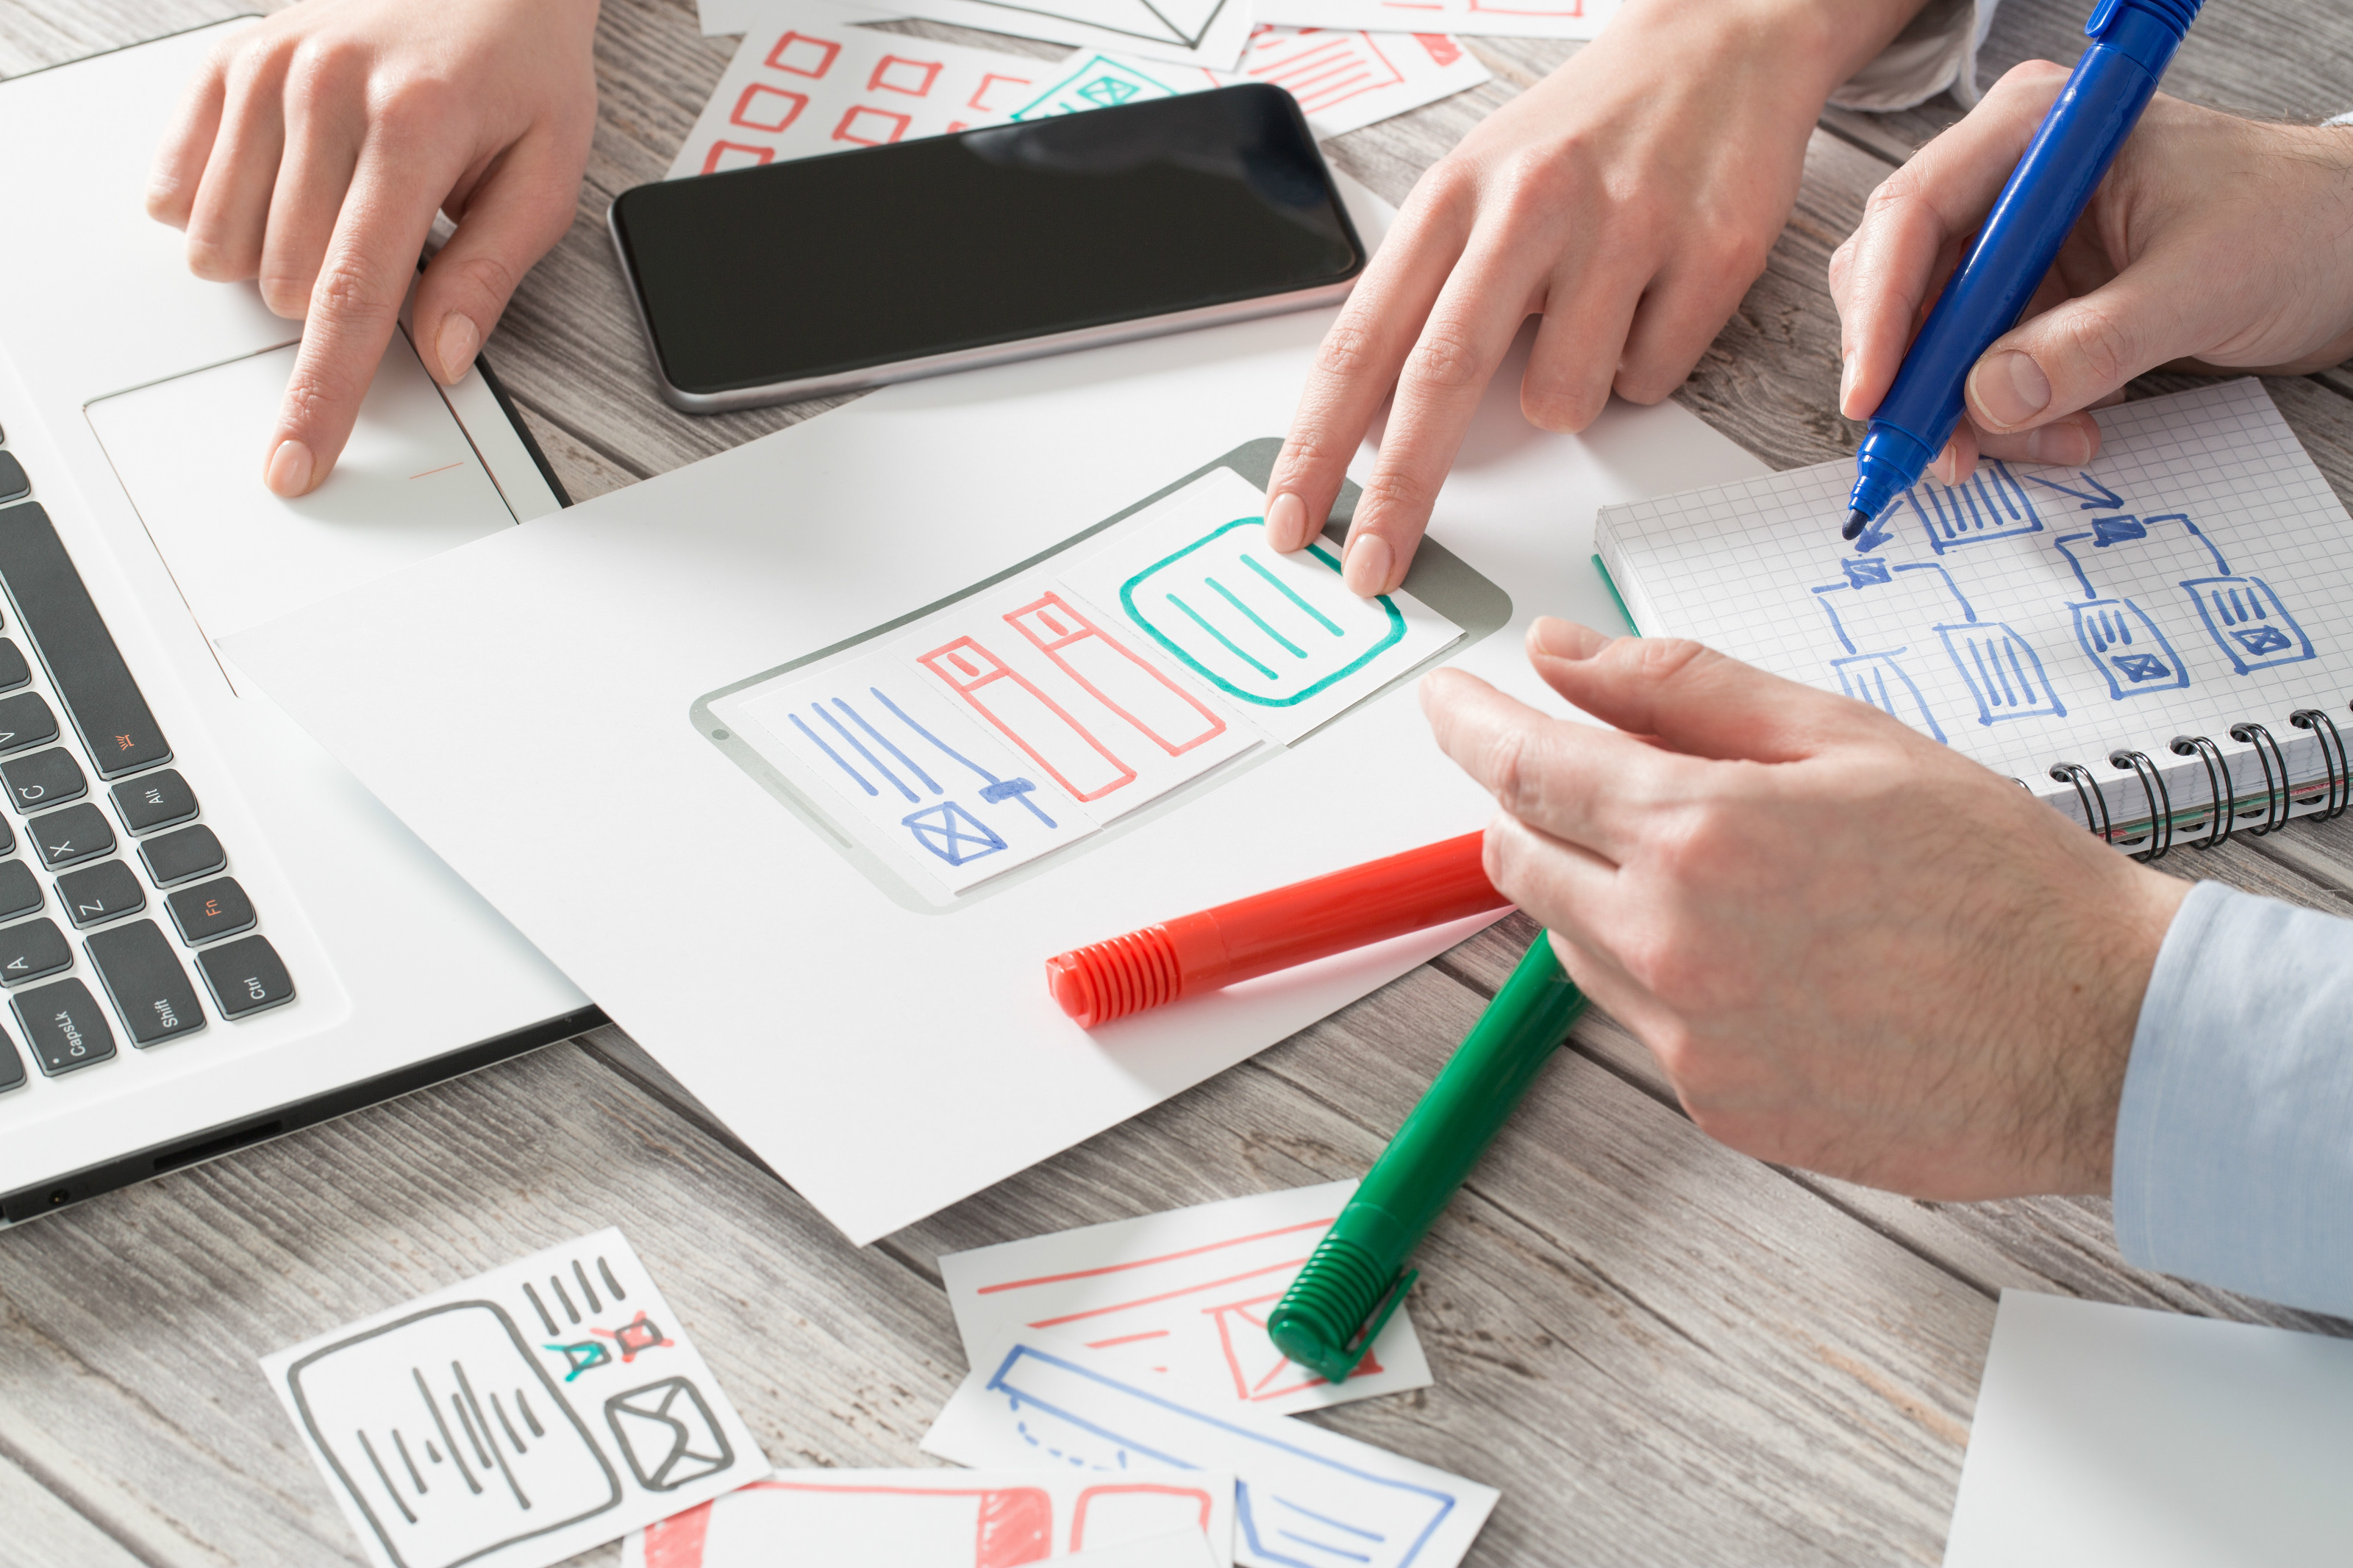 AI in UX and other UX trends your company should pay